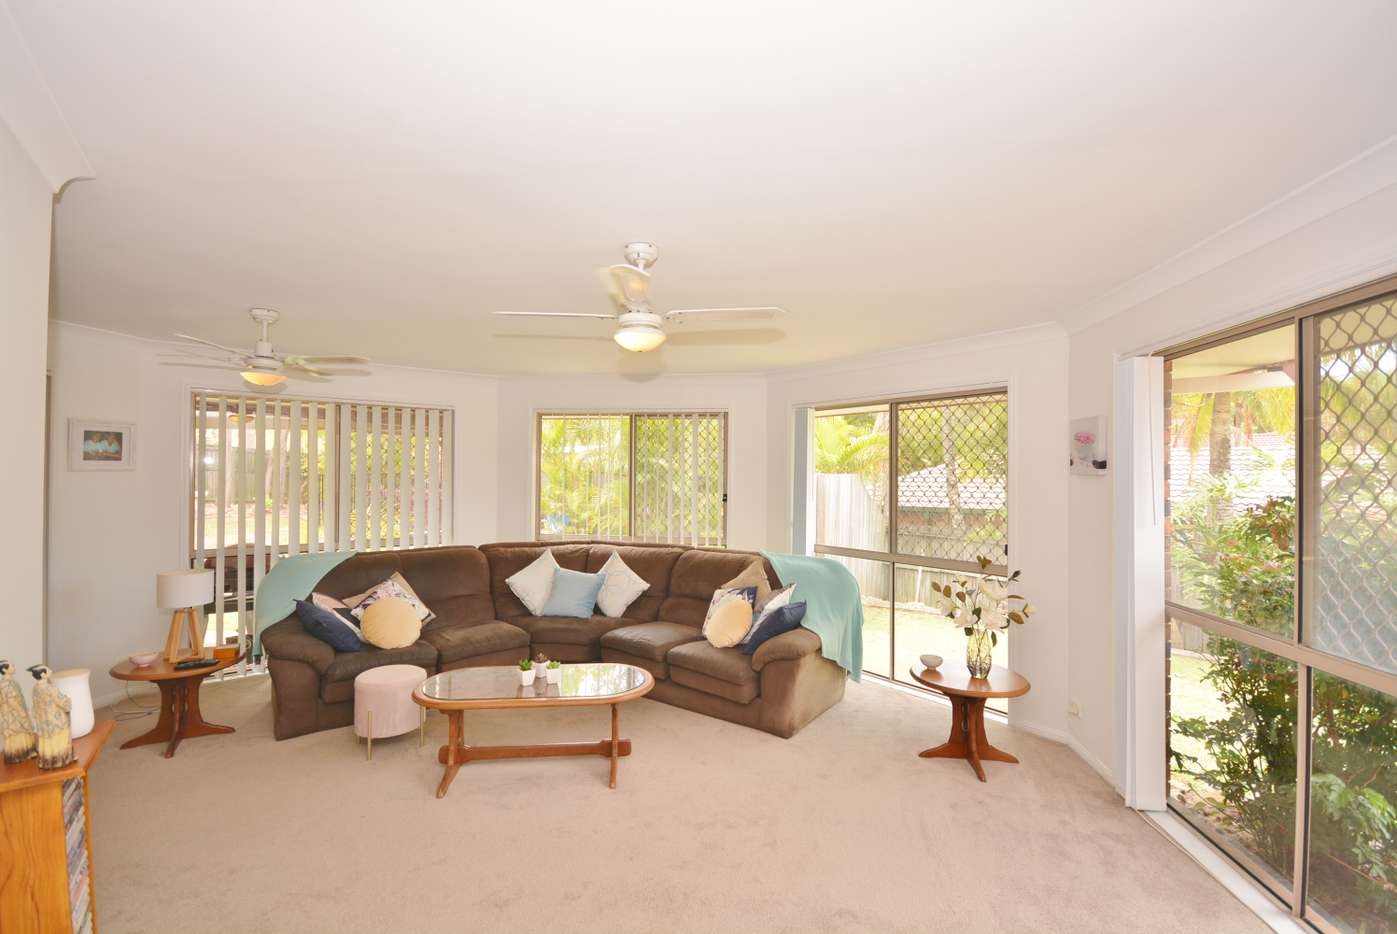 Main view of Homely house listing, 32 Alcott Court, Parkwood, QLD 4214